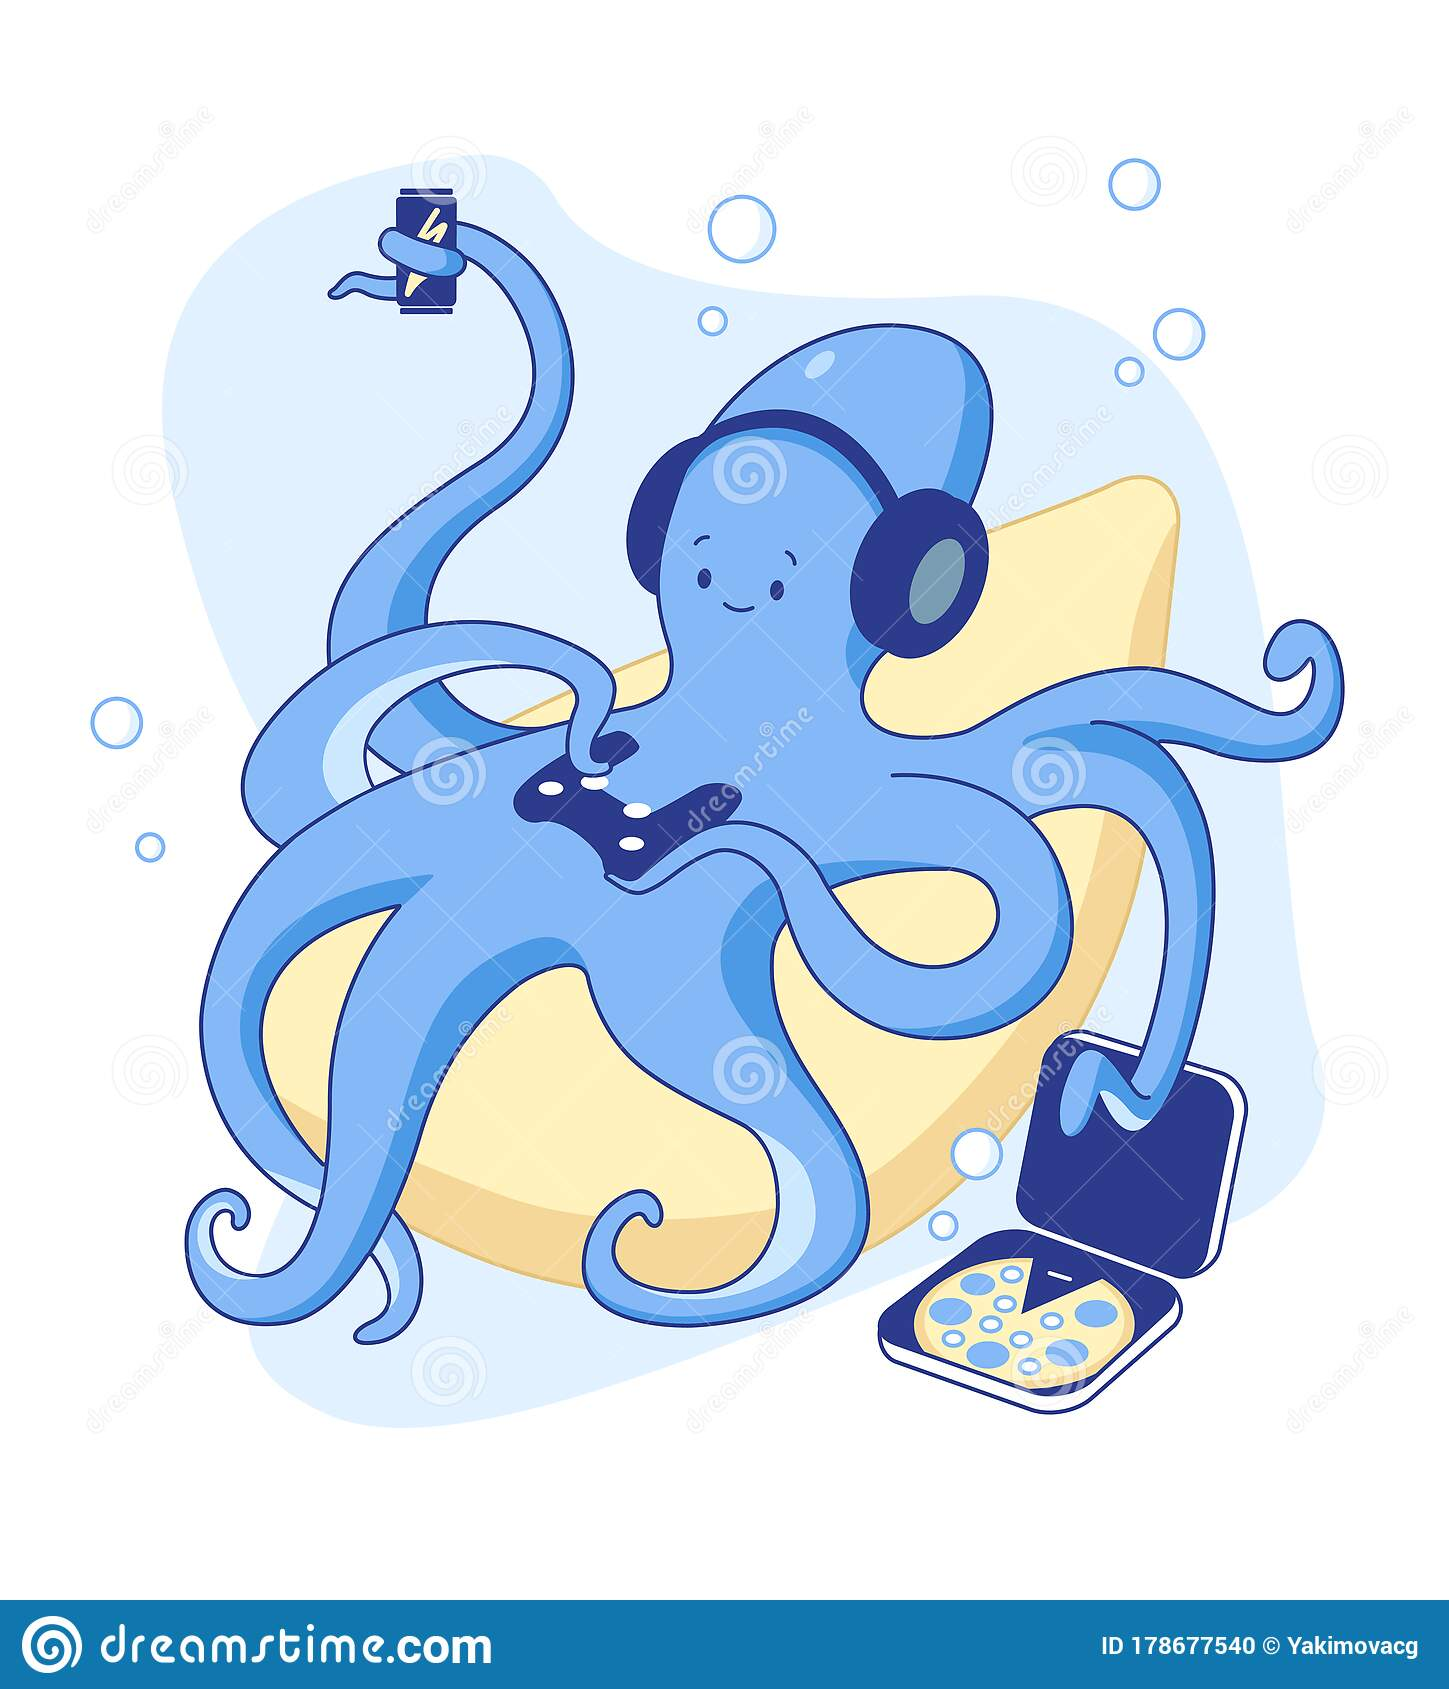 Cute Octopus Gamer Plays Videogame On Console At Home Stay At Home Stock Vector Illustration Of Relax Gamepad 178677540